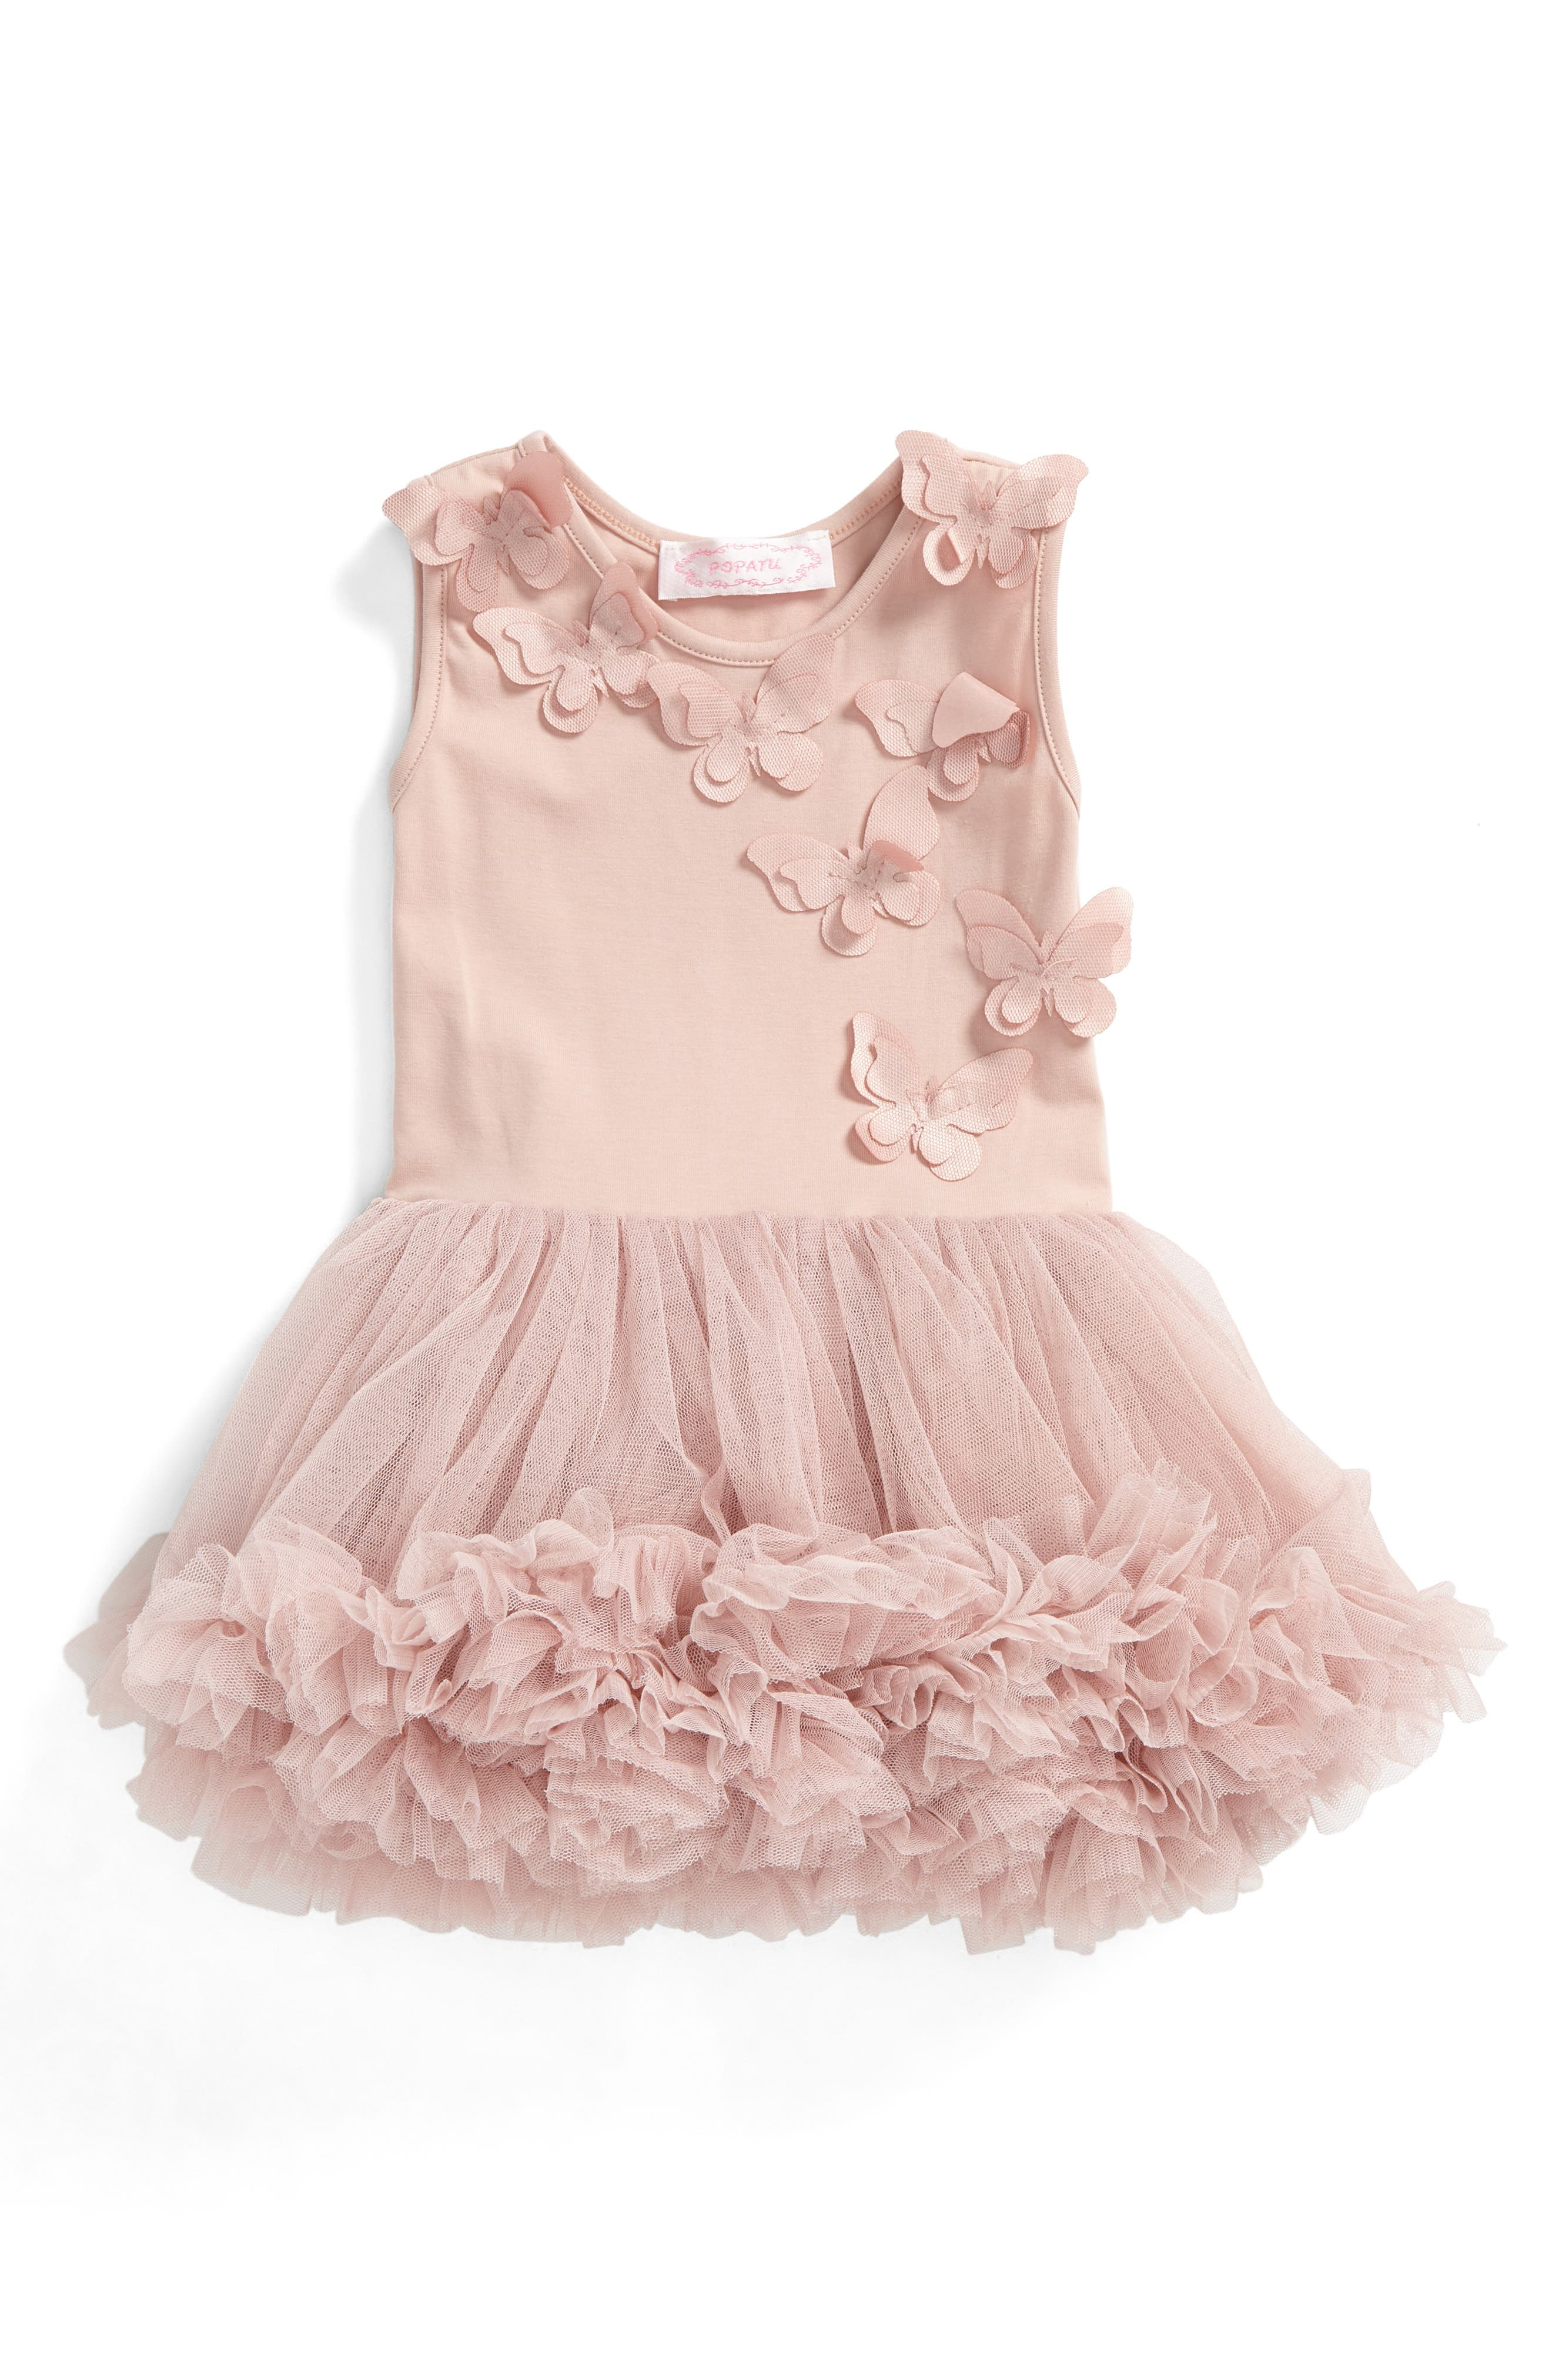 Butterfly Pettidress,                         Main,                         color, Dusty Pink